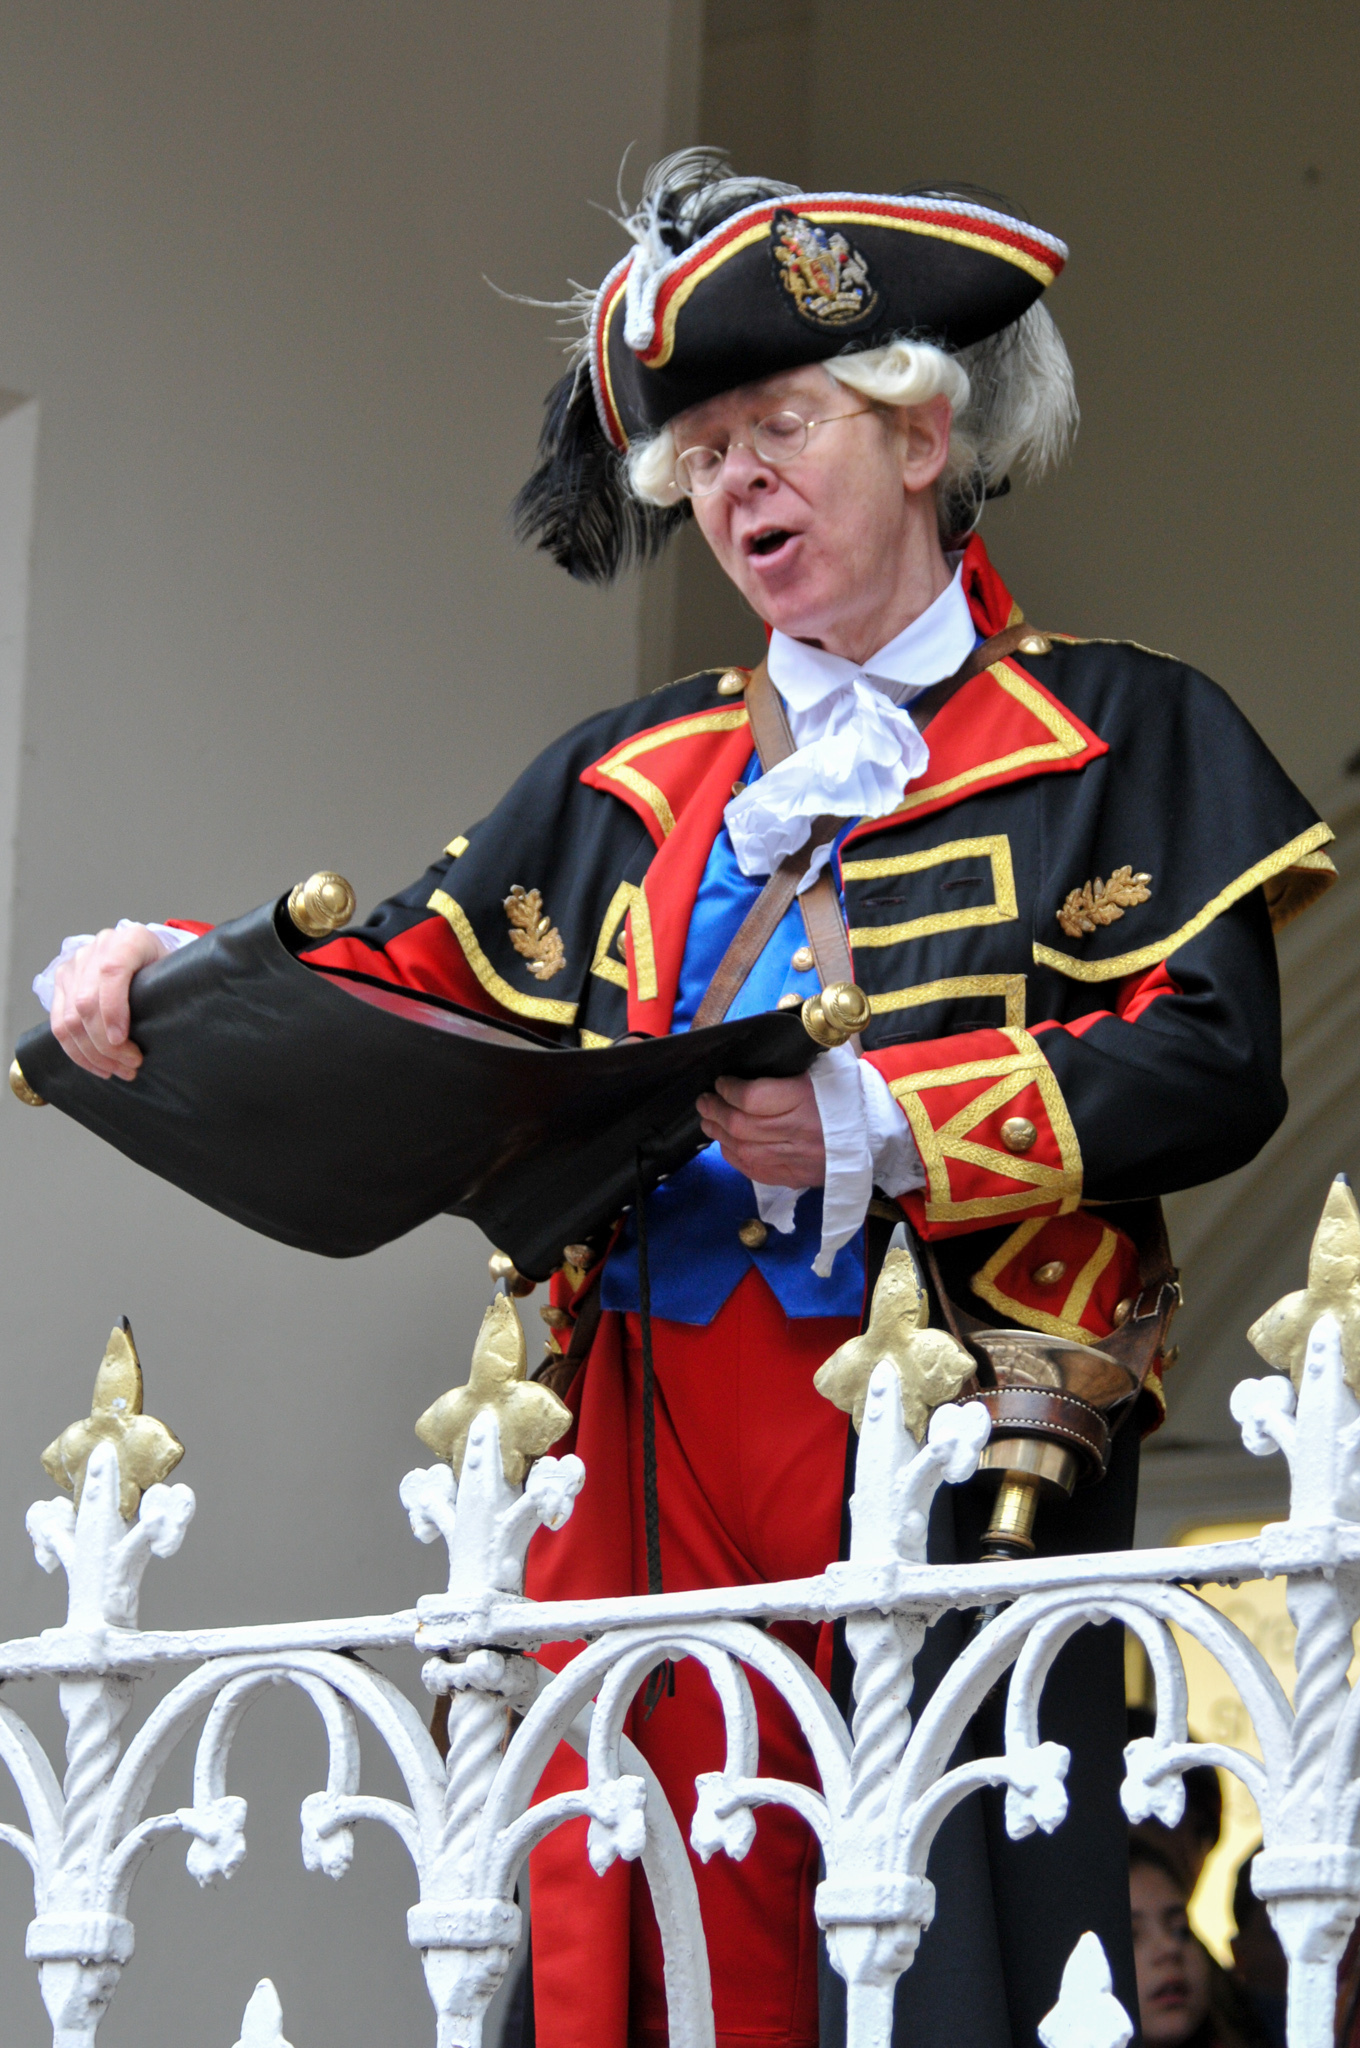 Oswestry are on the hunt for their new Town Crier. Pictured is Chester's Town Crier